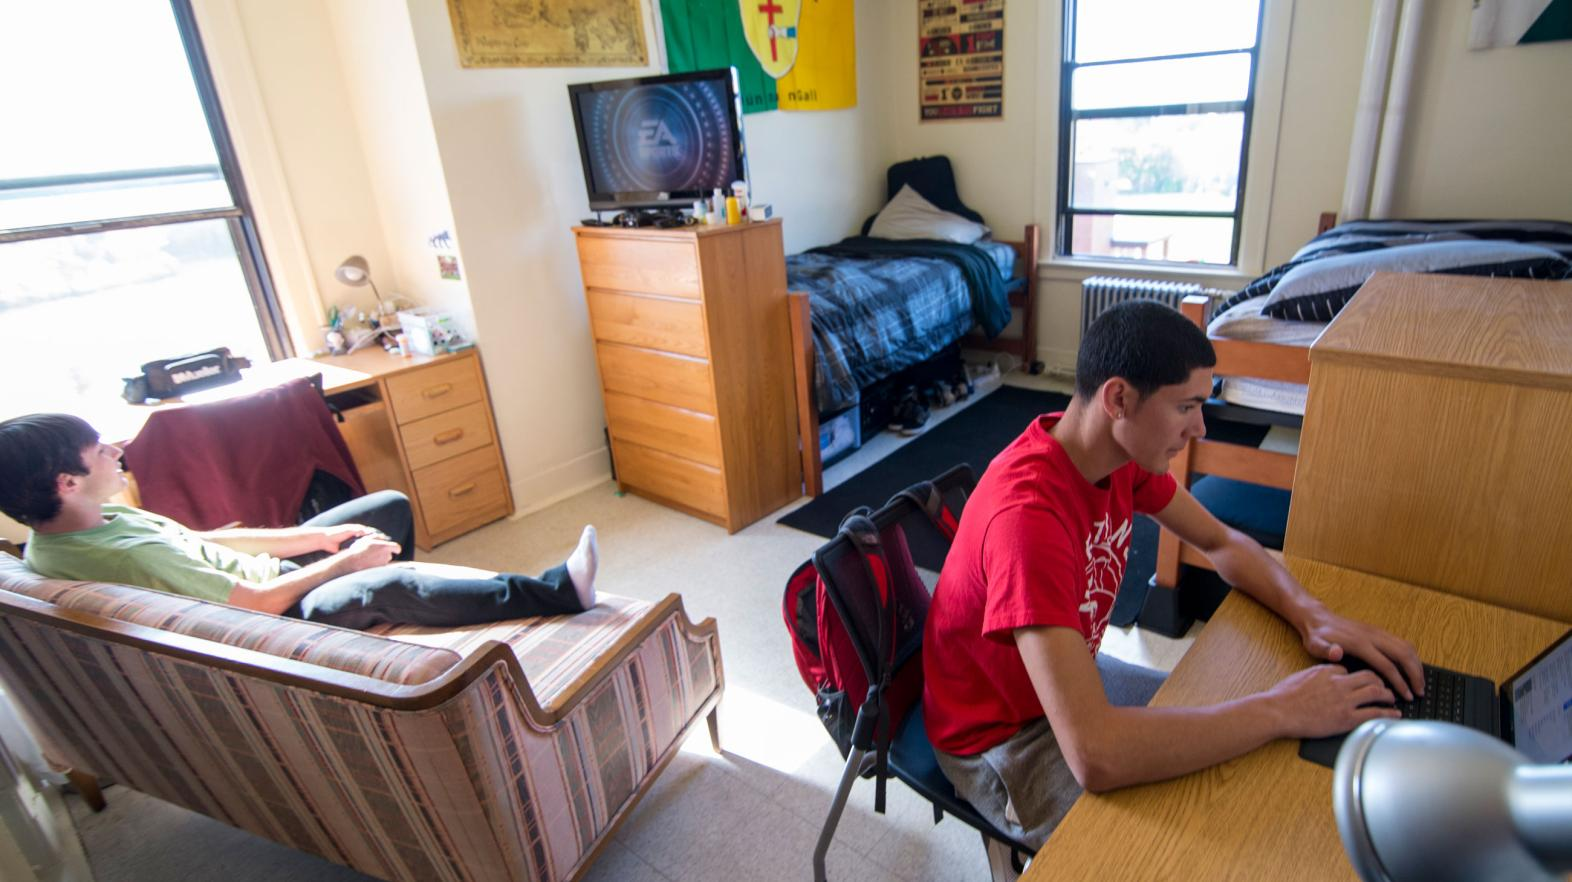 A student sites at his desk to work on his laptop while his roommate plays video games in their residence hall room.